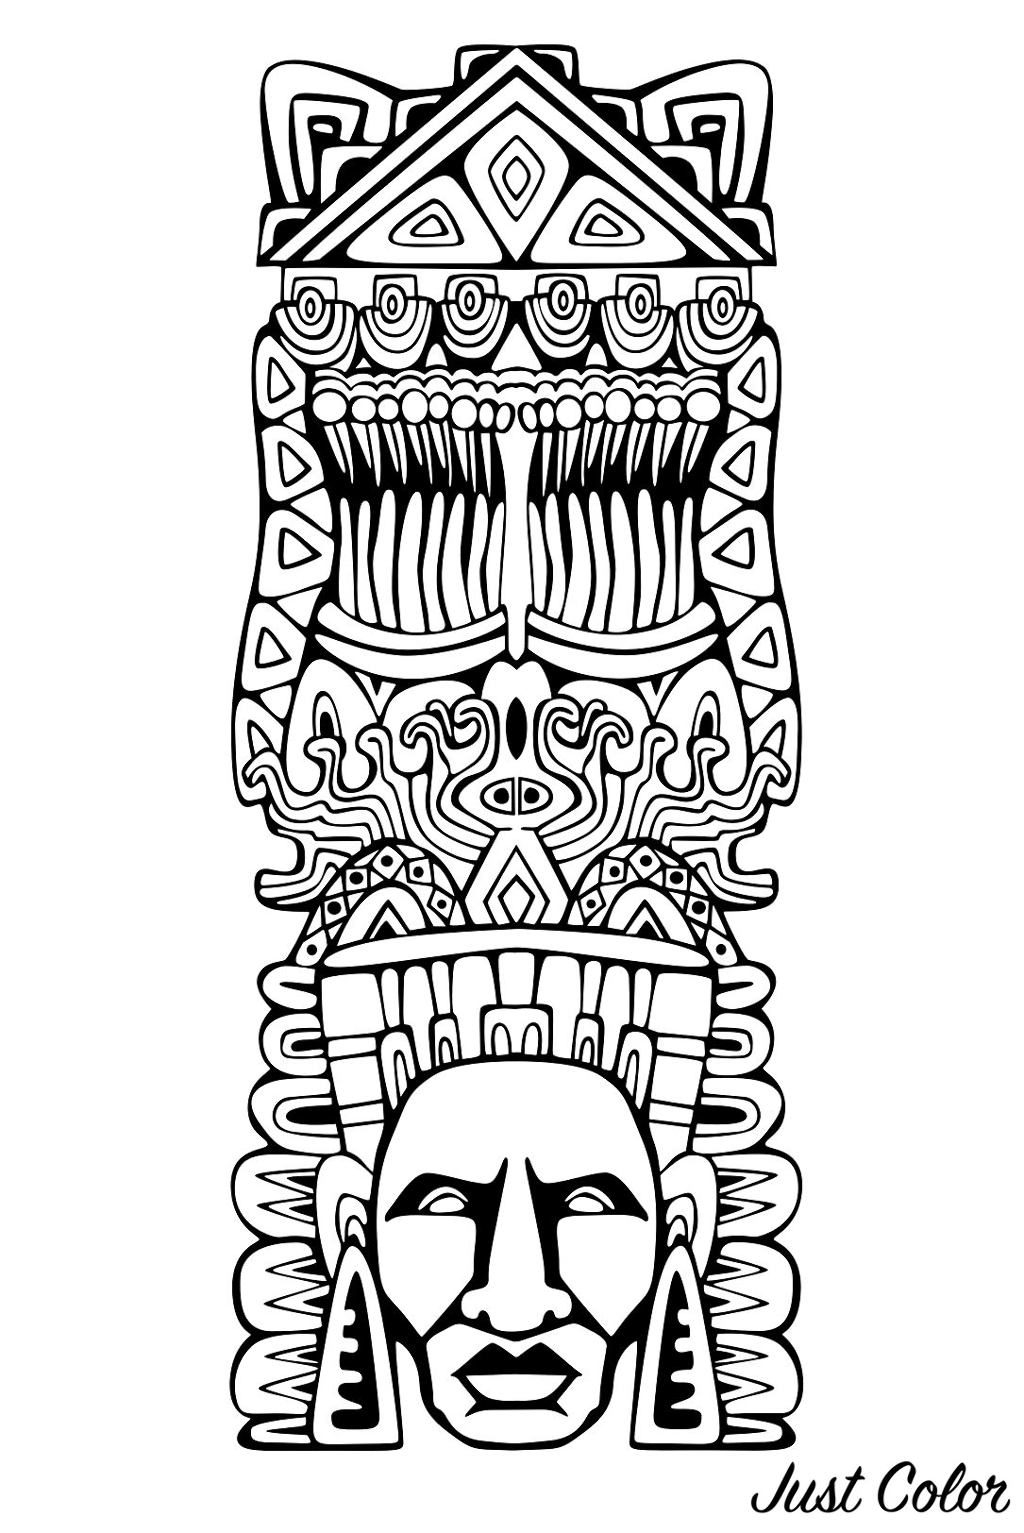 Totem inspired by Aztecs, Mayans and Incas - 1